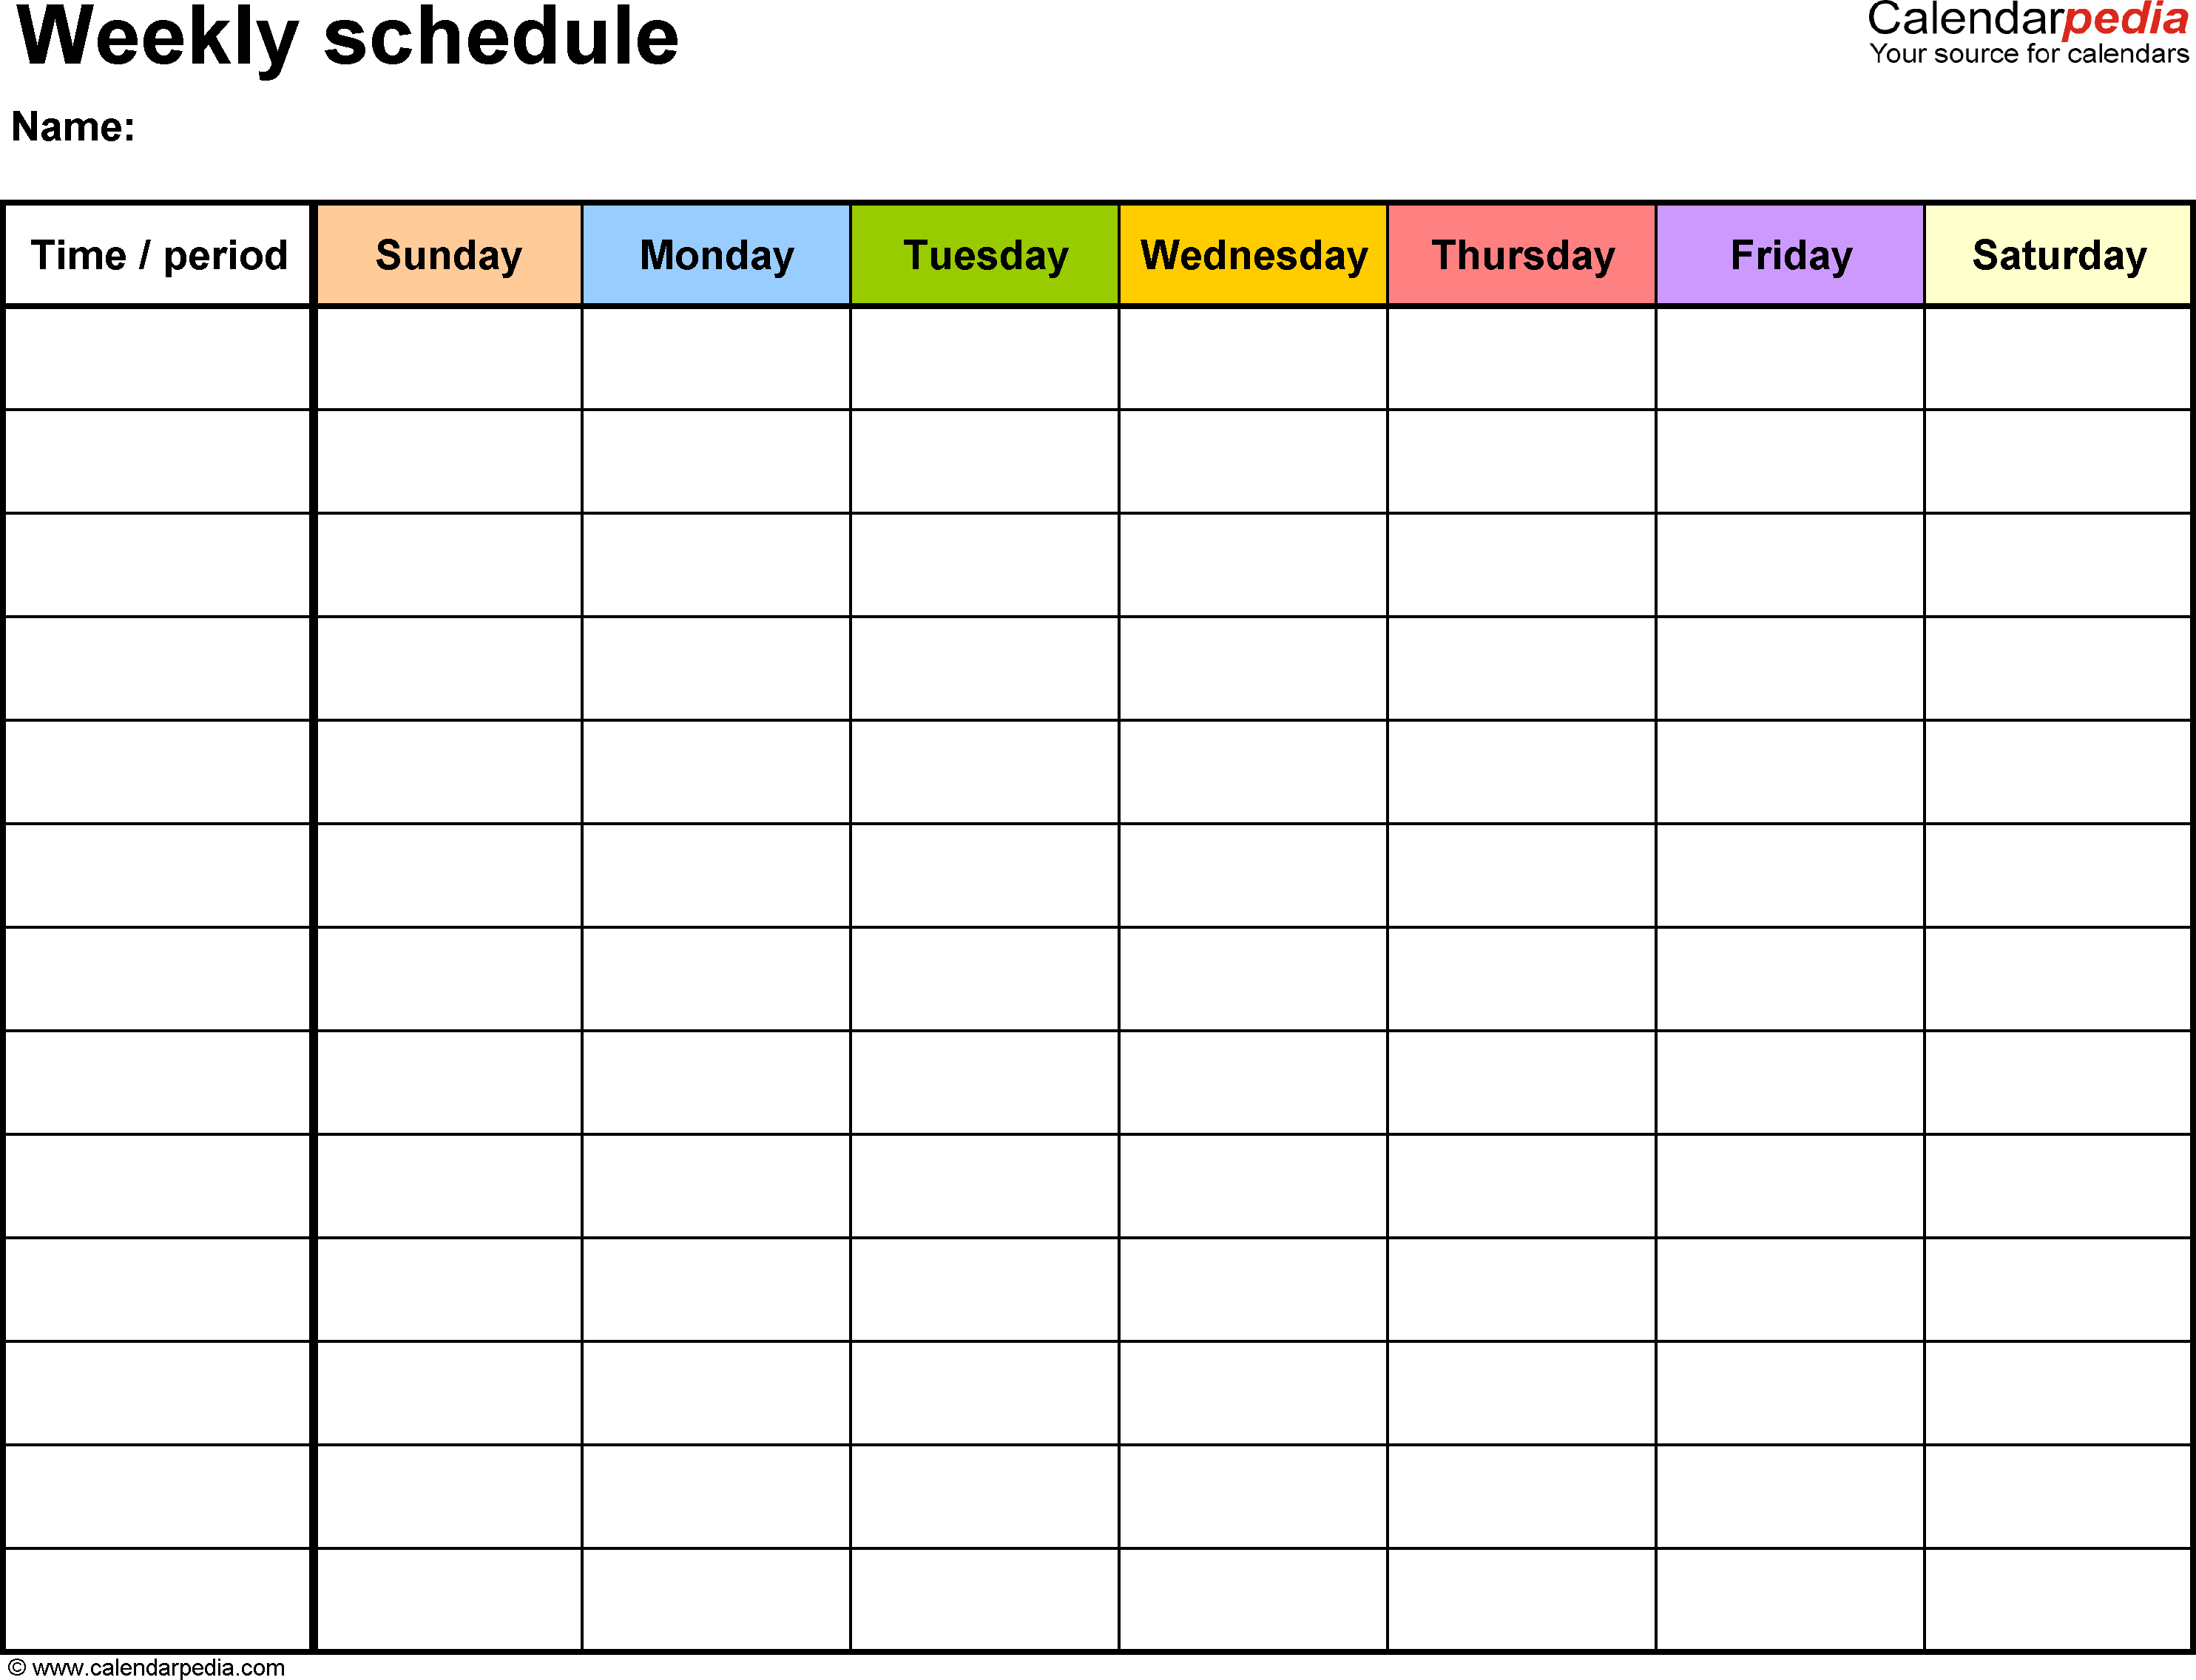 Free Weekly Schedule Templates For Word - 18 Templates with regard to 7 Day Week Blank Calendar